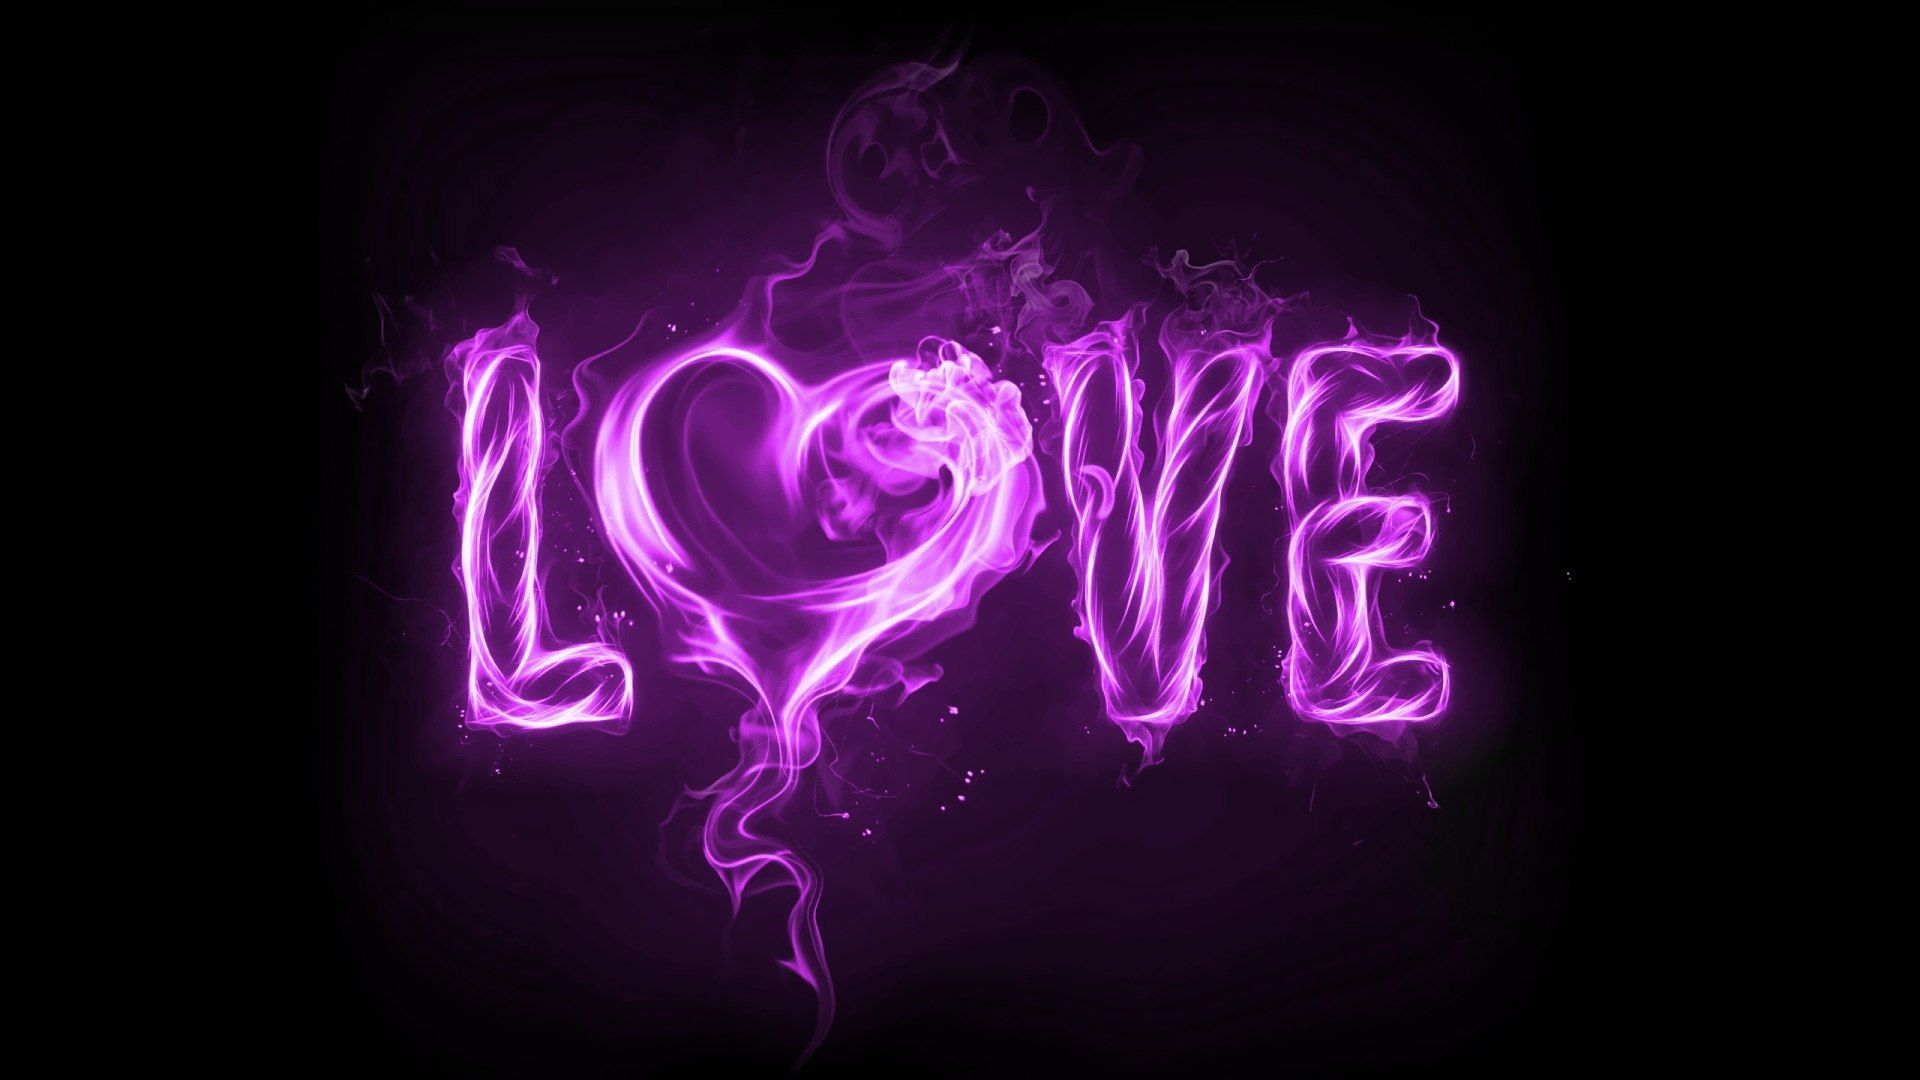 Love wallpapers 3h hd full size walpapers pinterest wallpaper purple love fire black wallpaper hd desktop background wallpaper res added on march 17 tagged wallpaper wallpaper at moshlab wallpaper voltagebd Images